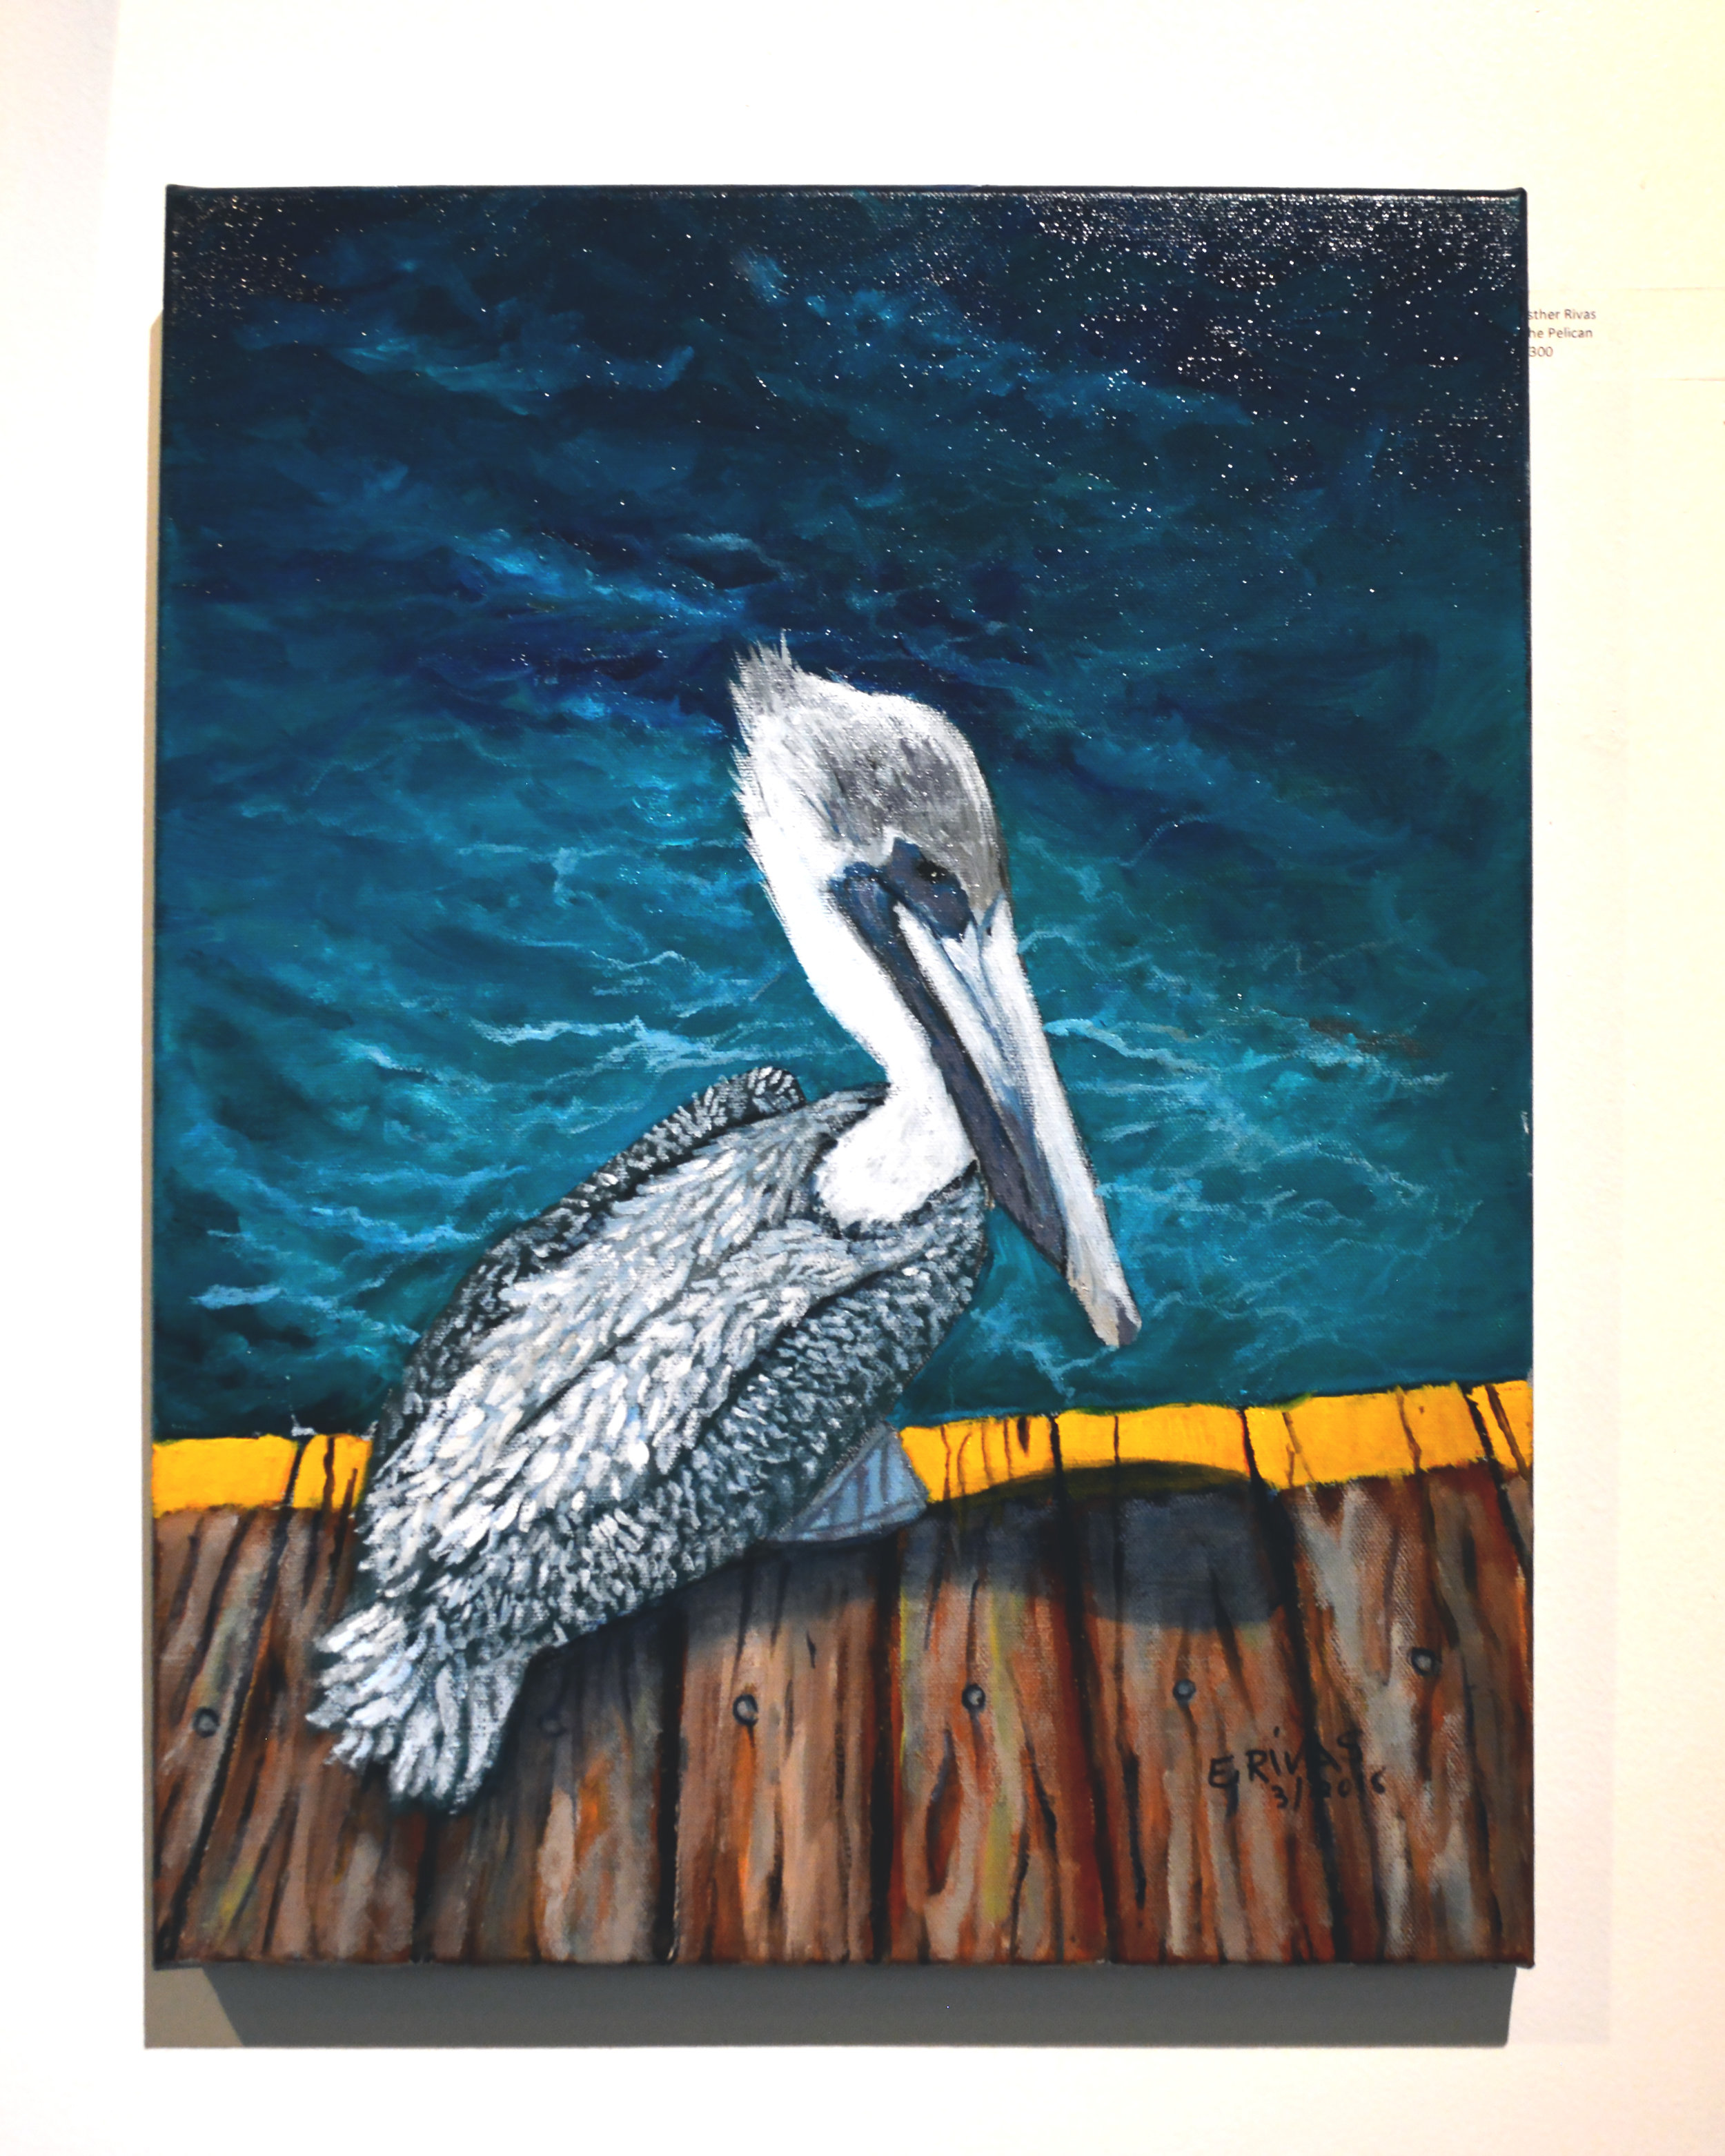 Esther Rivas - Classic oil on canvas painting animals, seascapes, American pride.